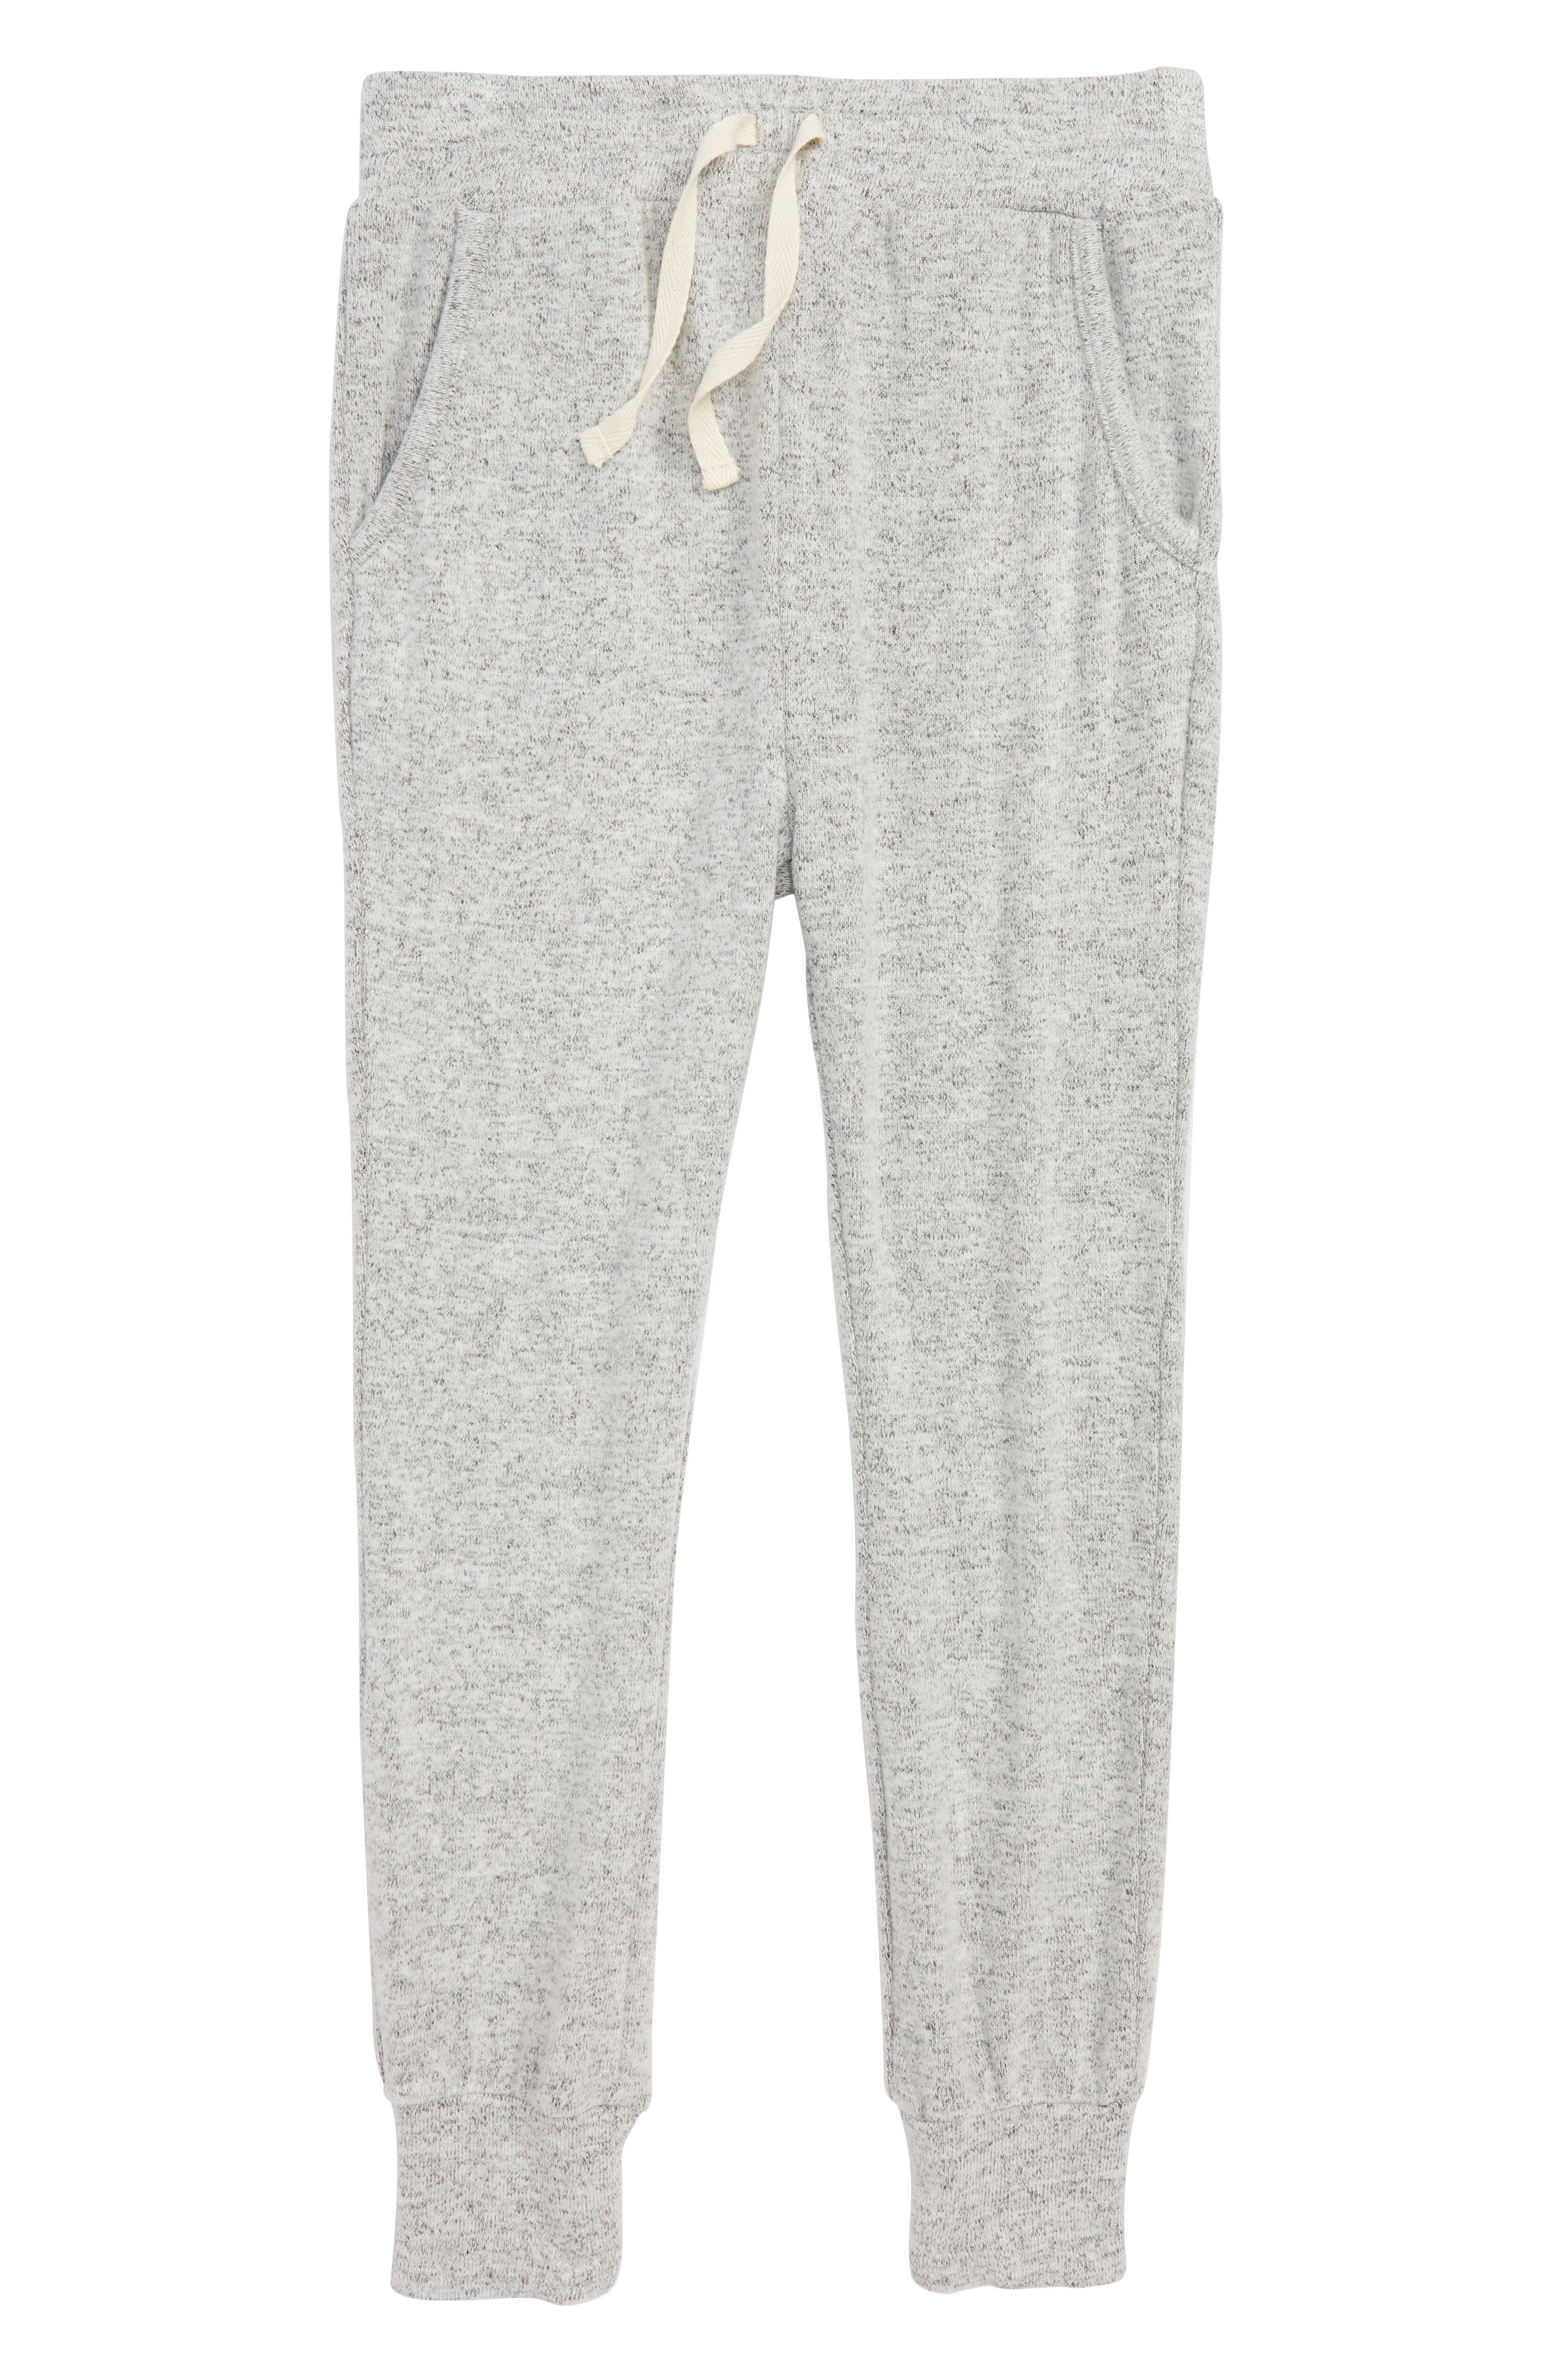 Cozy Jogger Pants,                         Main,                         color, GREY ASH HEATHER